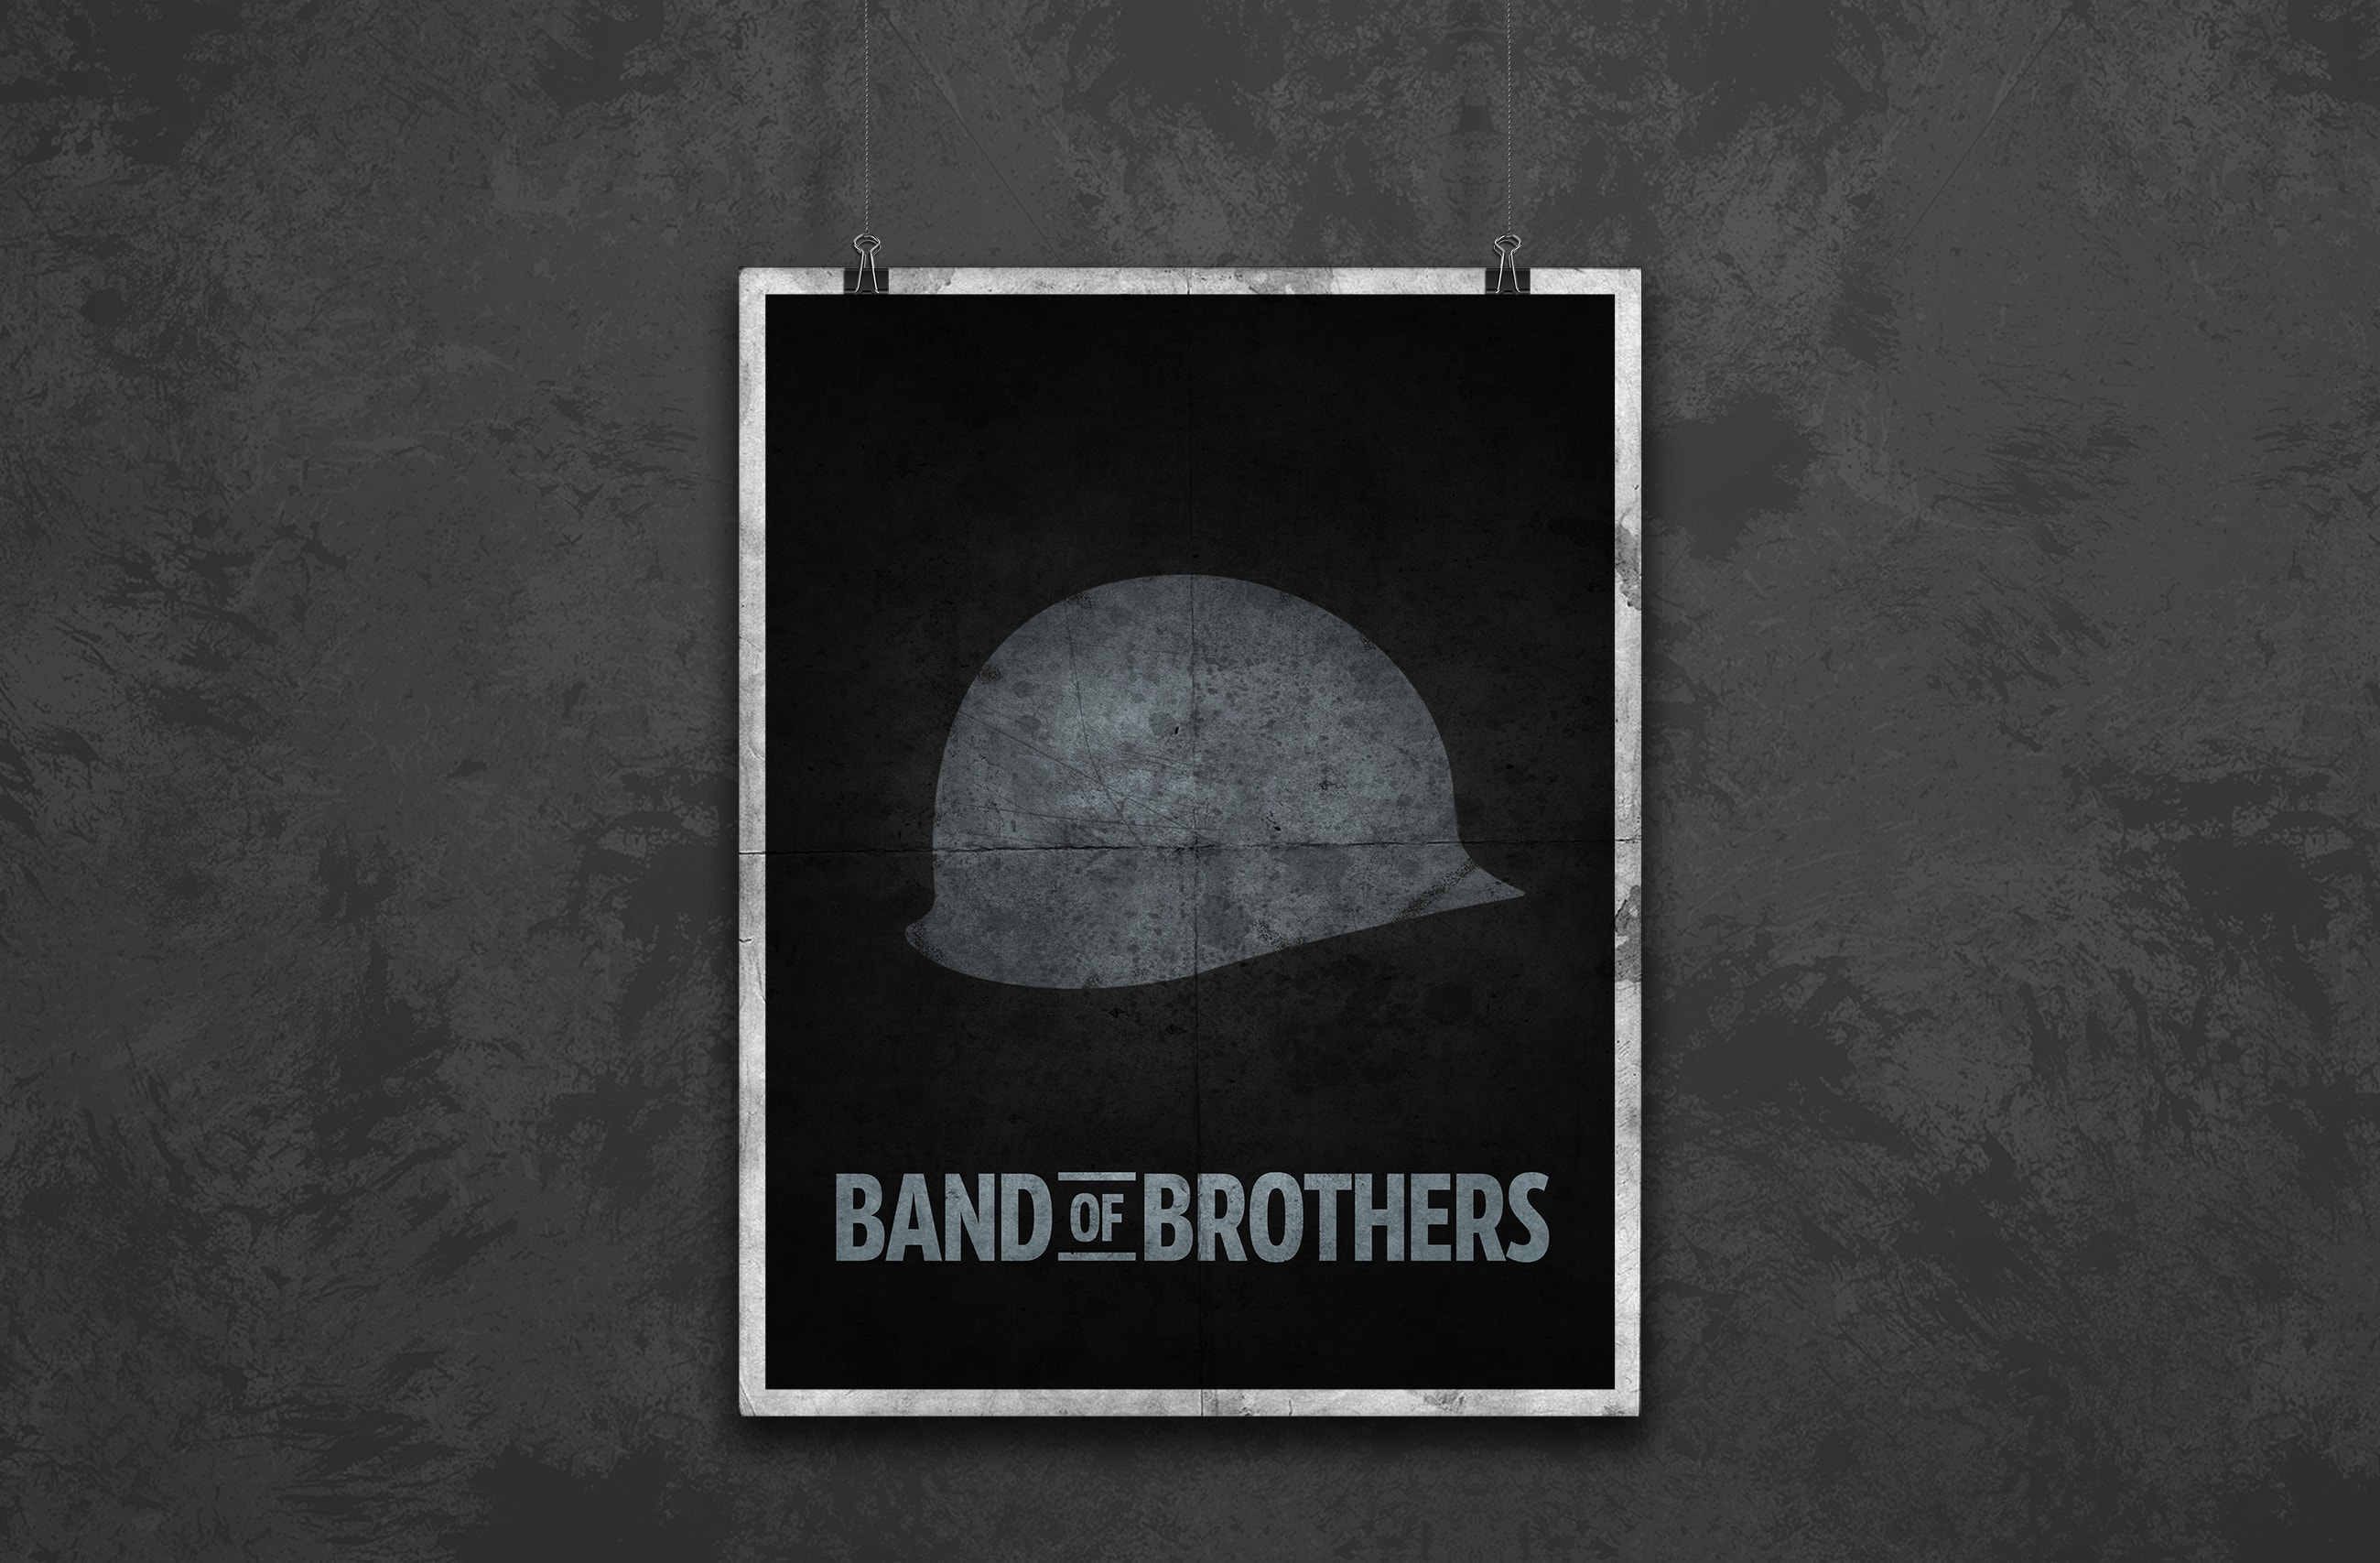 band of brothers minimal poster design